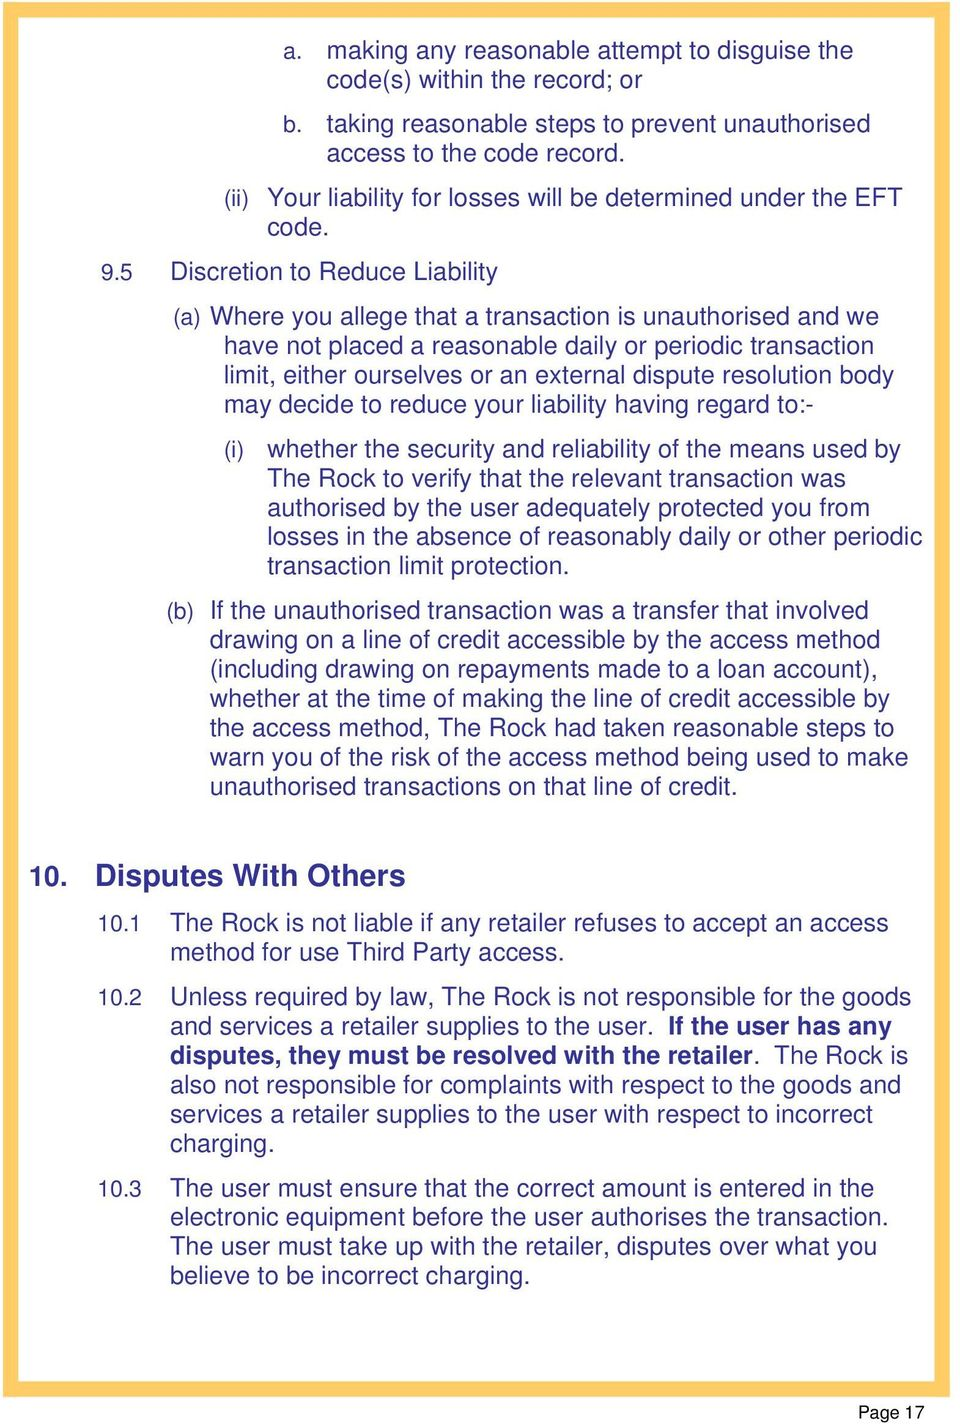 5 Discretion to Reduce Liability (a) Where you allege that a transaction is unauthorised and we have not placed a reasonable daily or periodic transaction limit, either ourselves or an external